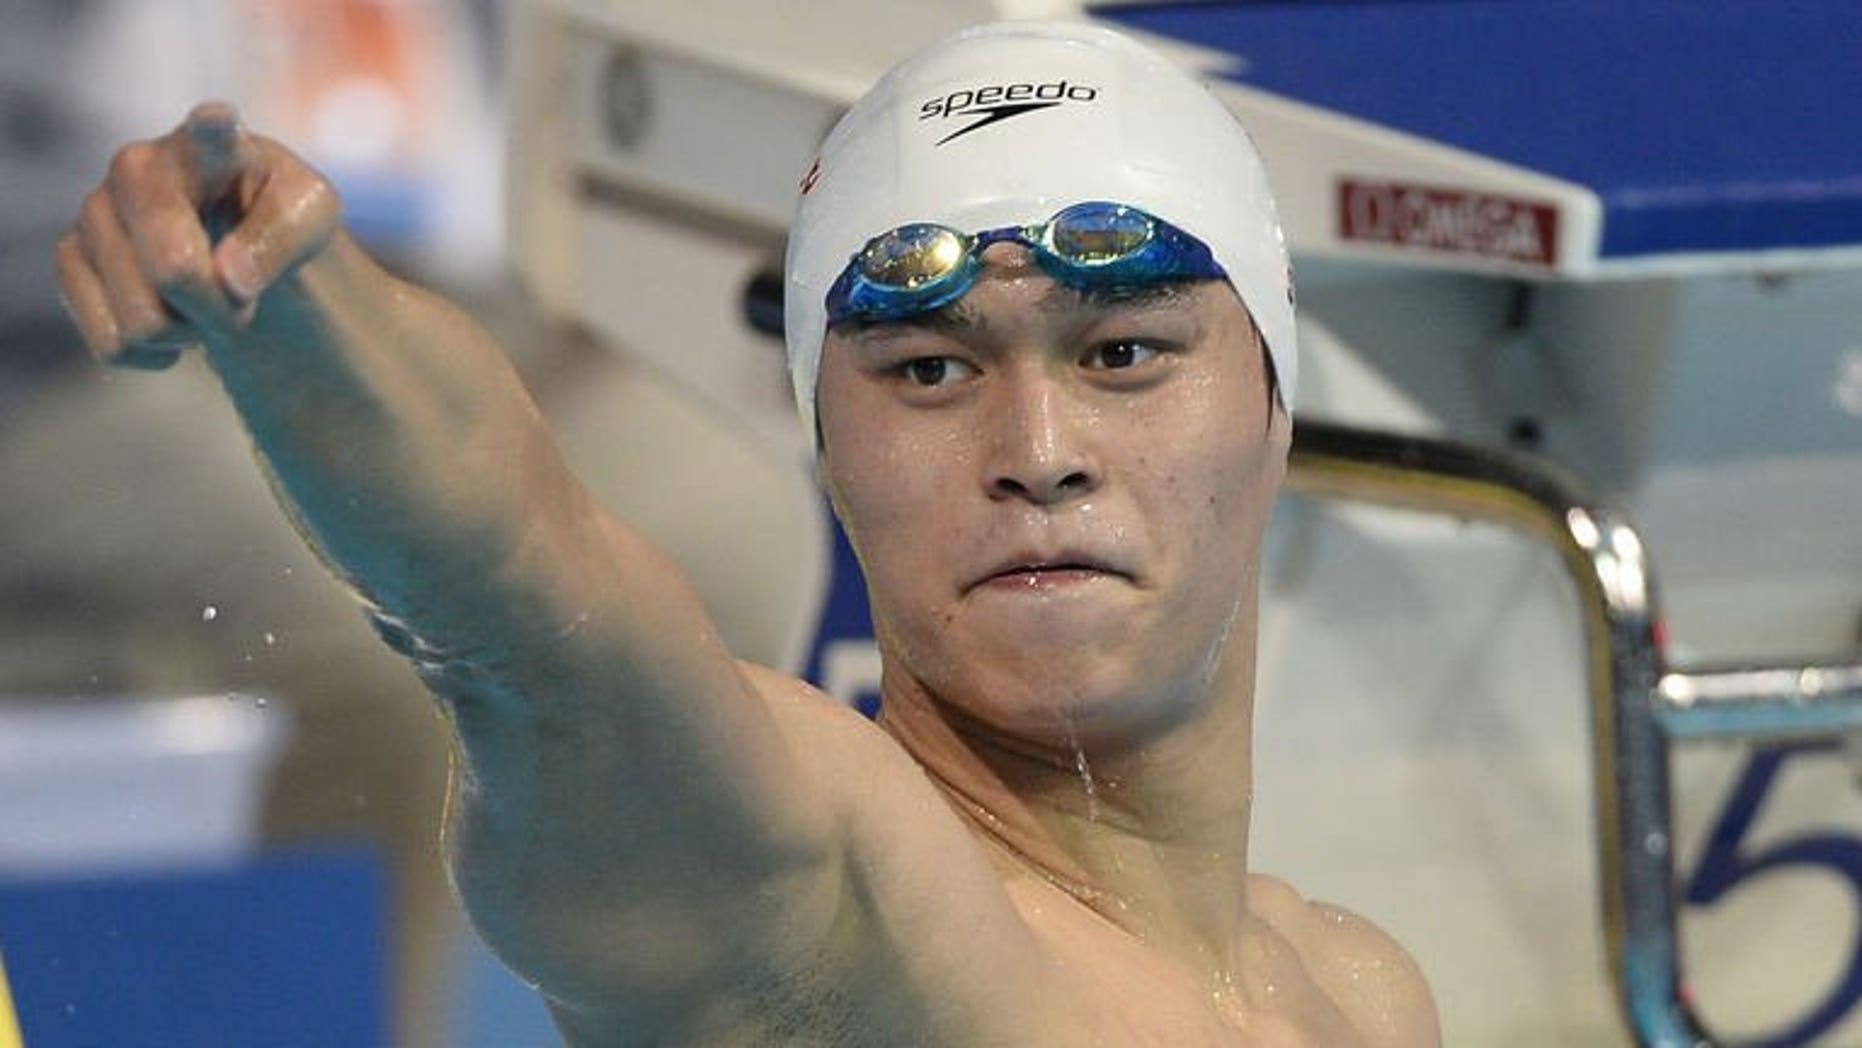 China's Sun Yang celebrates after winning the final of the men's 800-metre freestyle swimming event in the FINA World Championships at Palau Sant Jordi in Barcelona on July 31, 2013.